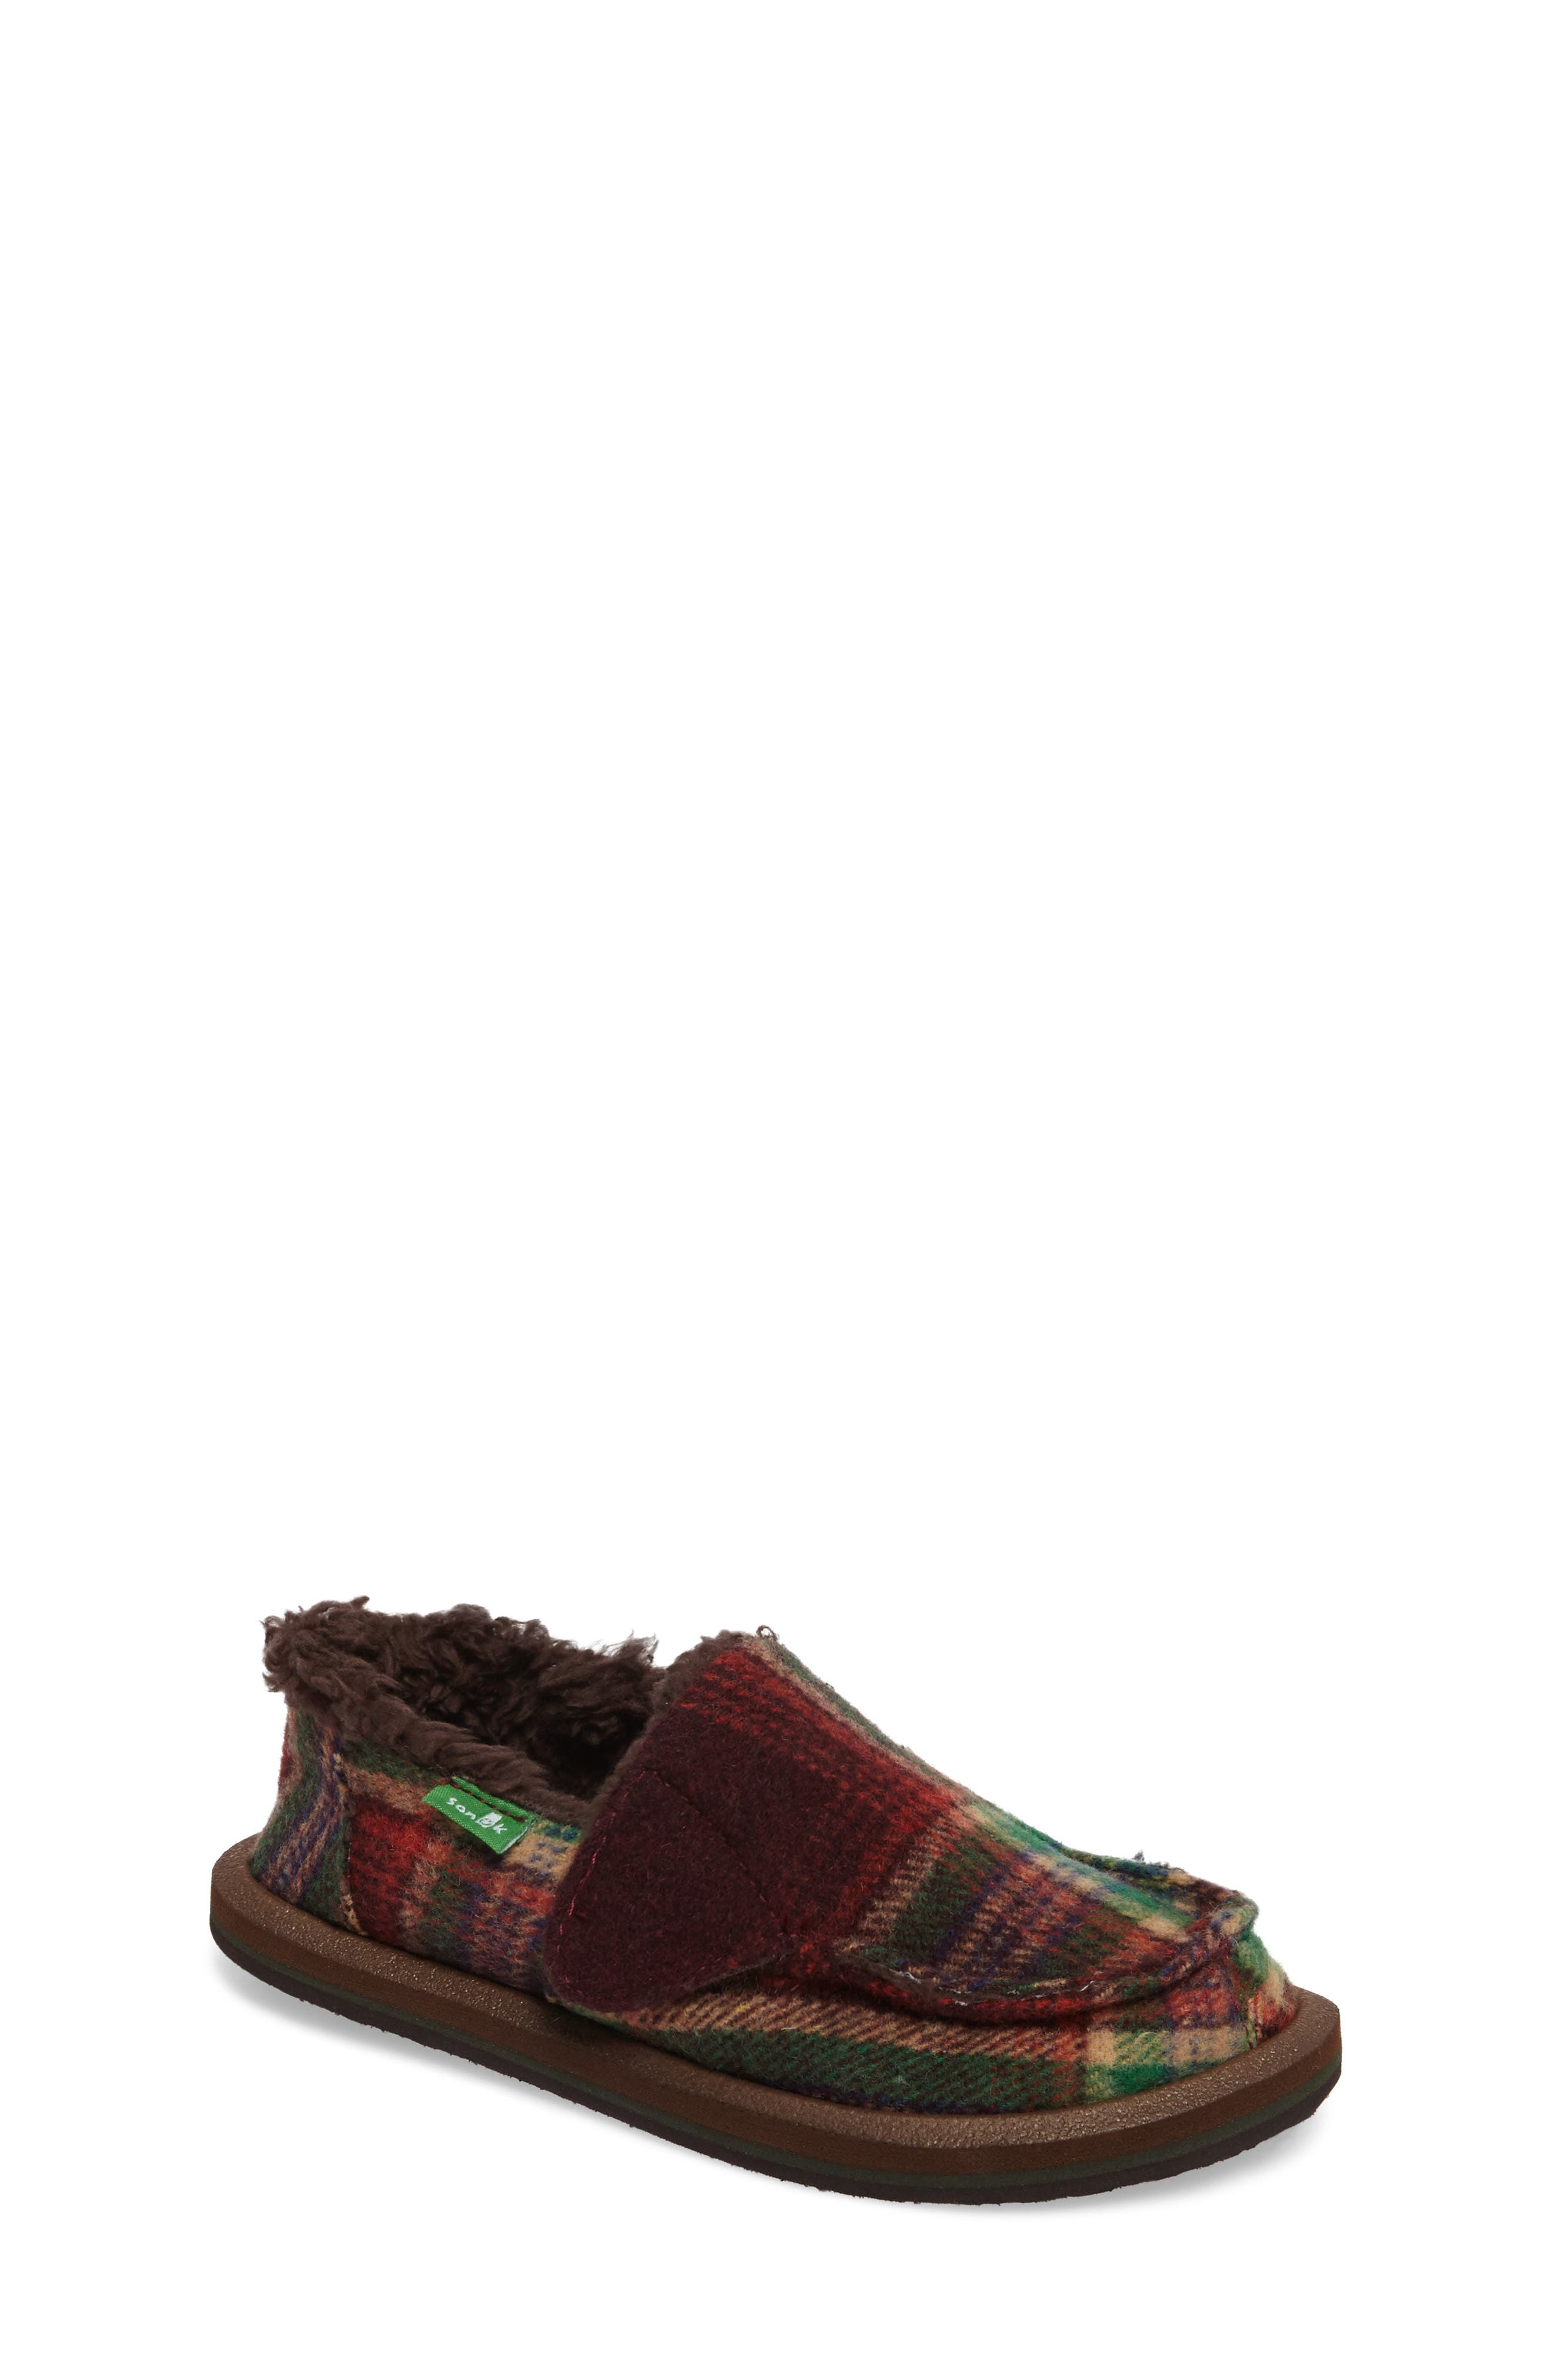 Main Image - Sanuk Vagabond Plaid Chill Faux Fur Slip-On (Toddler, Little Kid & Big Kid)